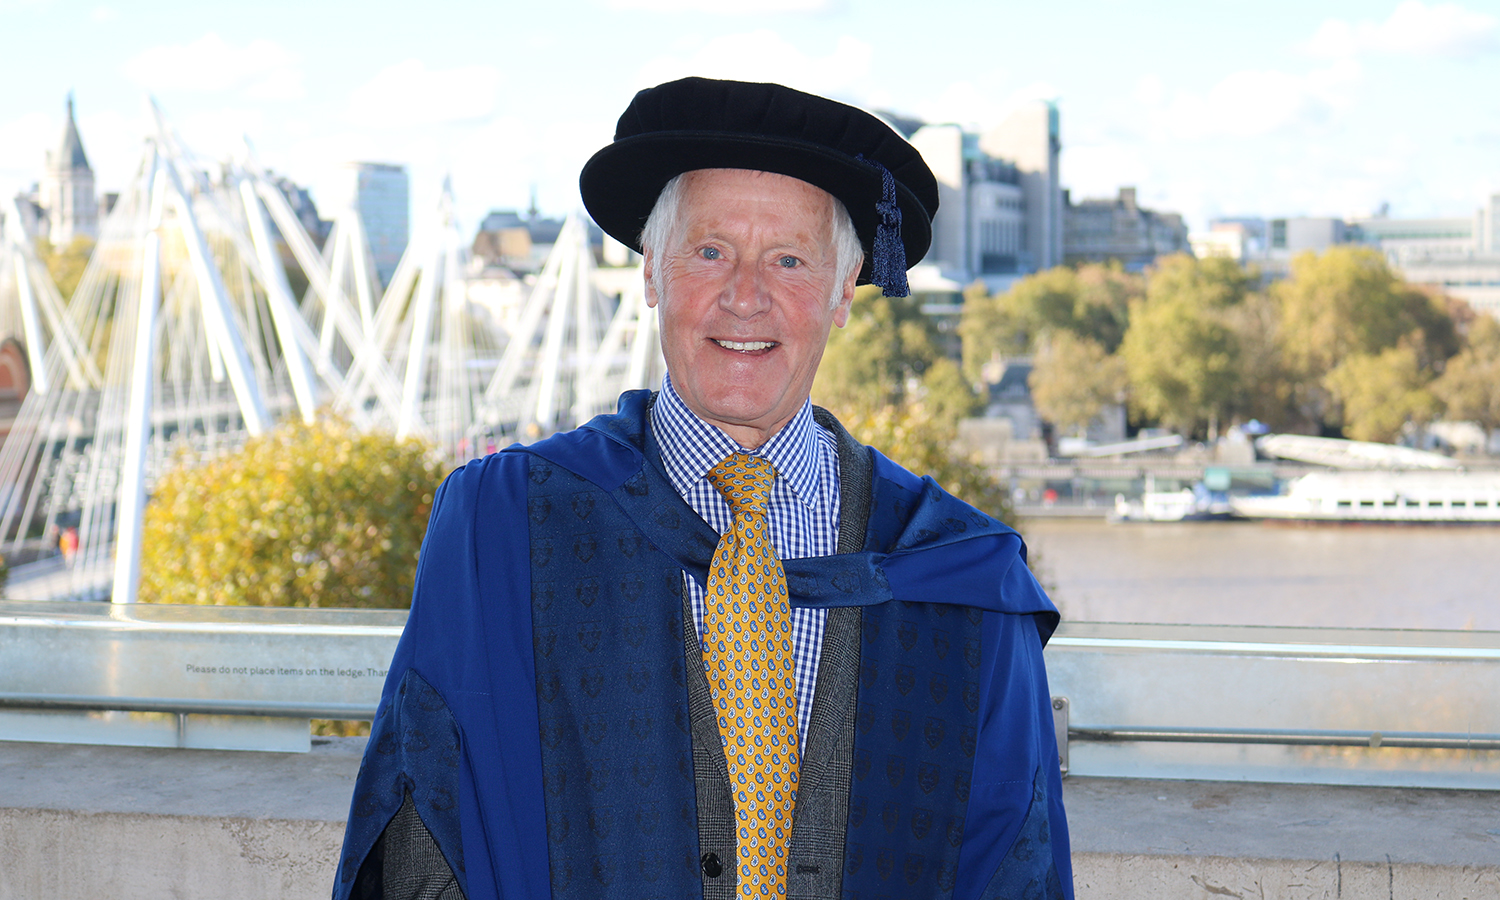 David Longbottom, former LSBU Pro-Chancellor, awarded honorary doctorate